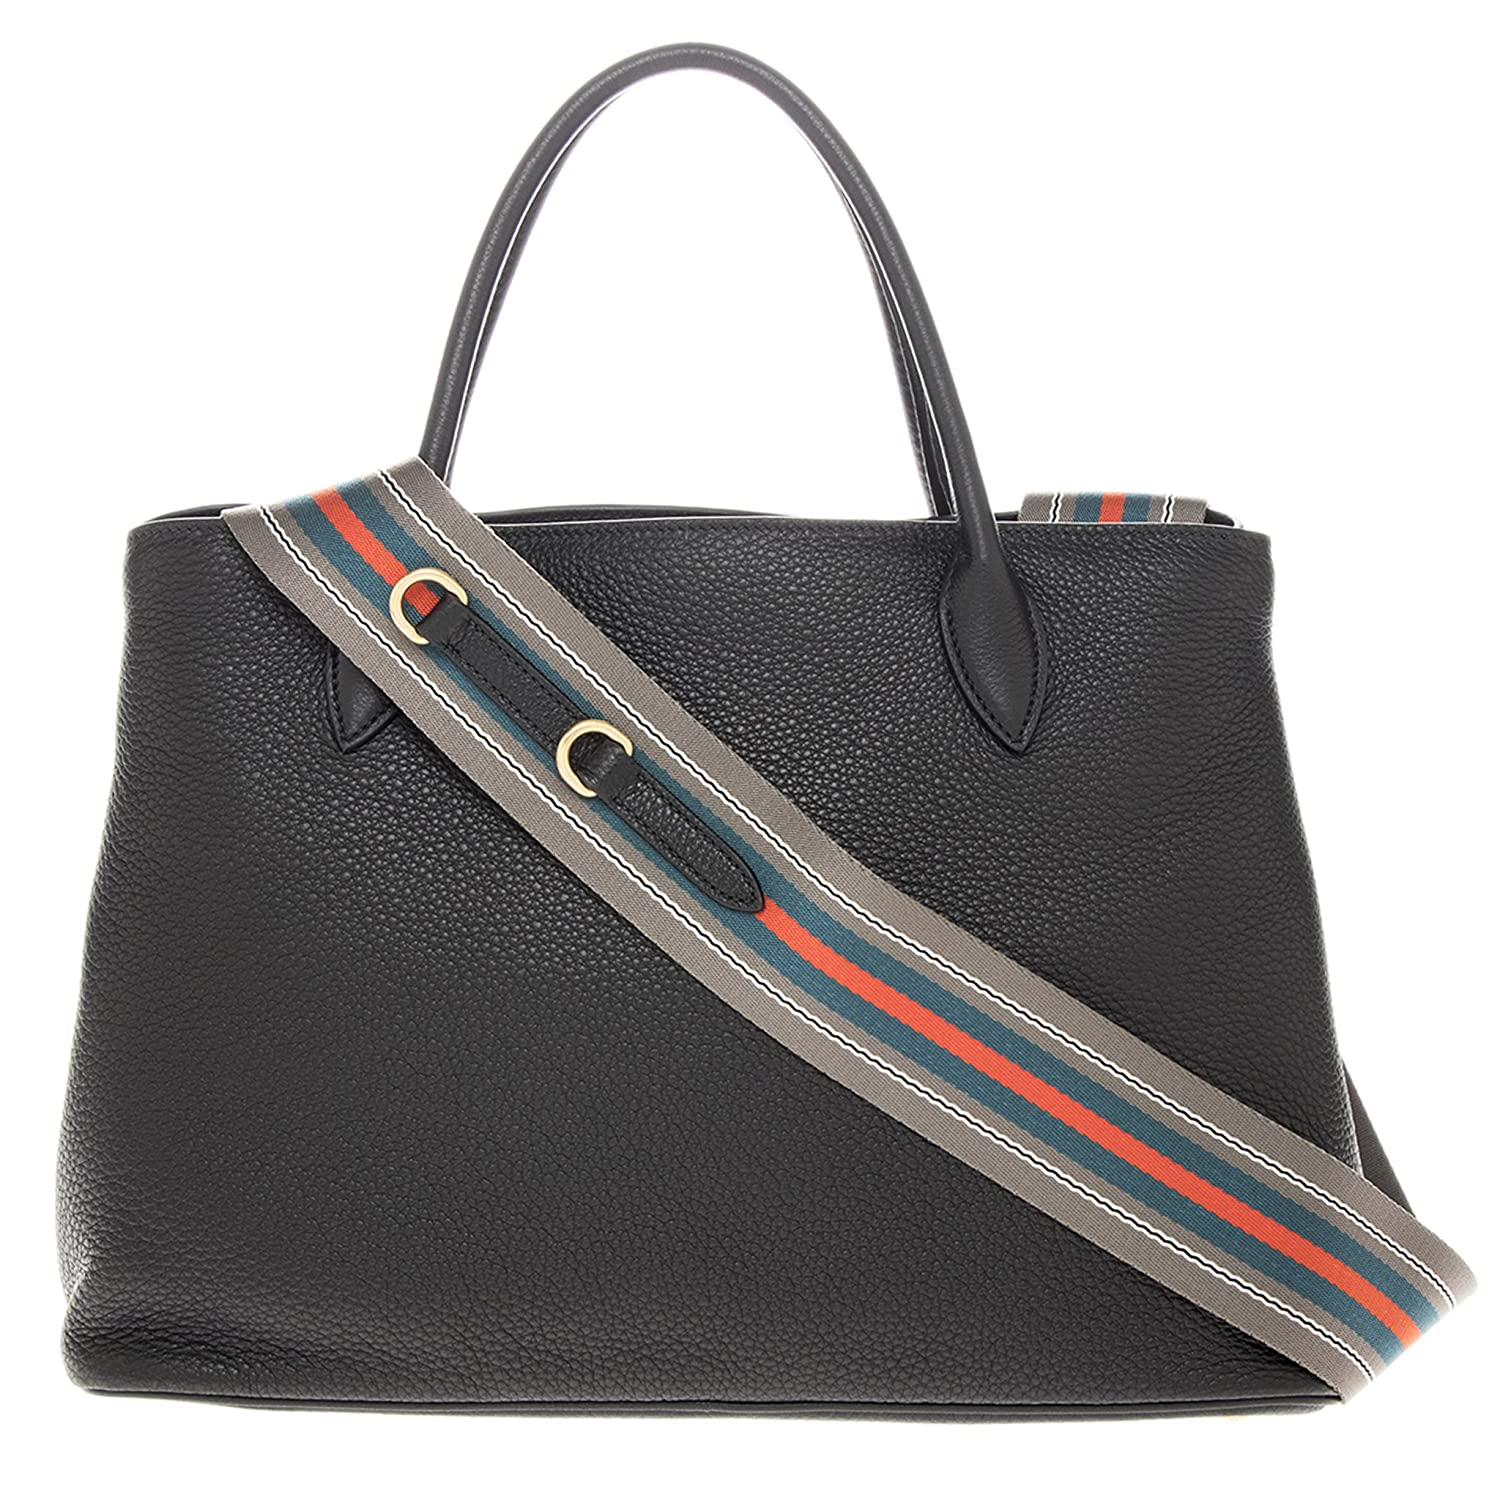 193be2f29c51 Amazon.com: Prada Women's Grained Leather Tote Black: Clothing